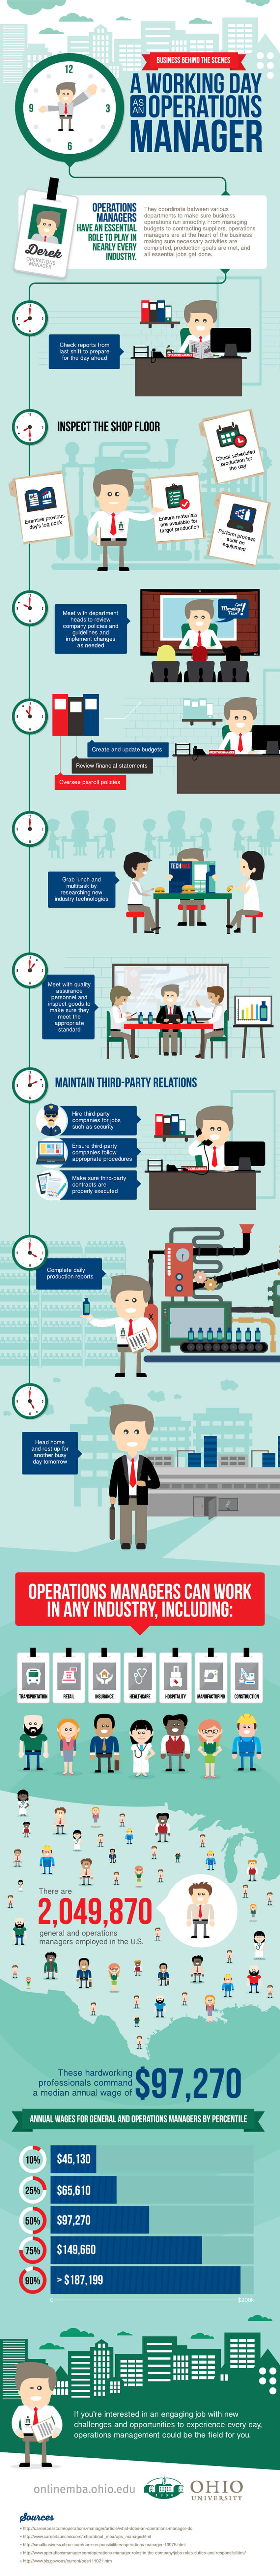 Business Behind the Scenes infographic